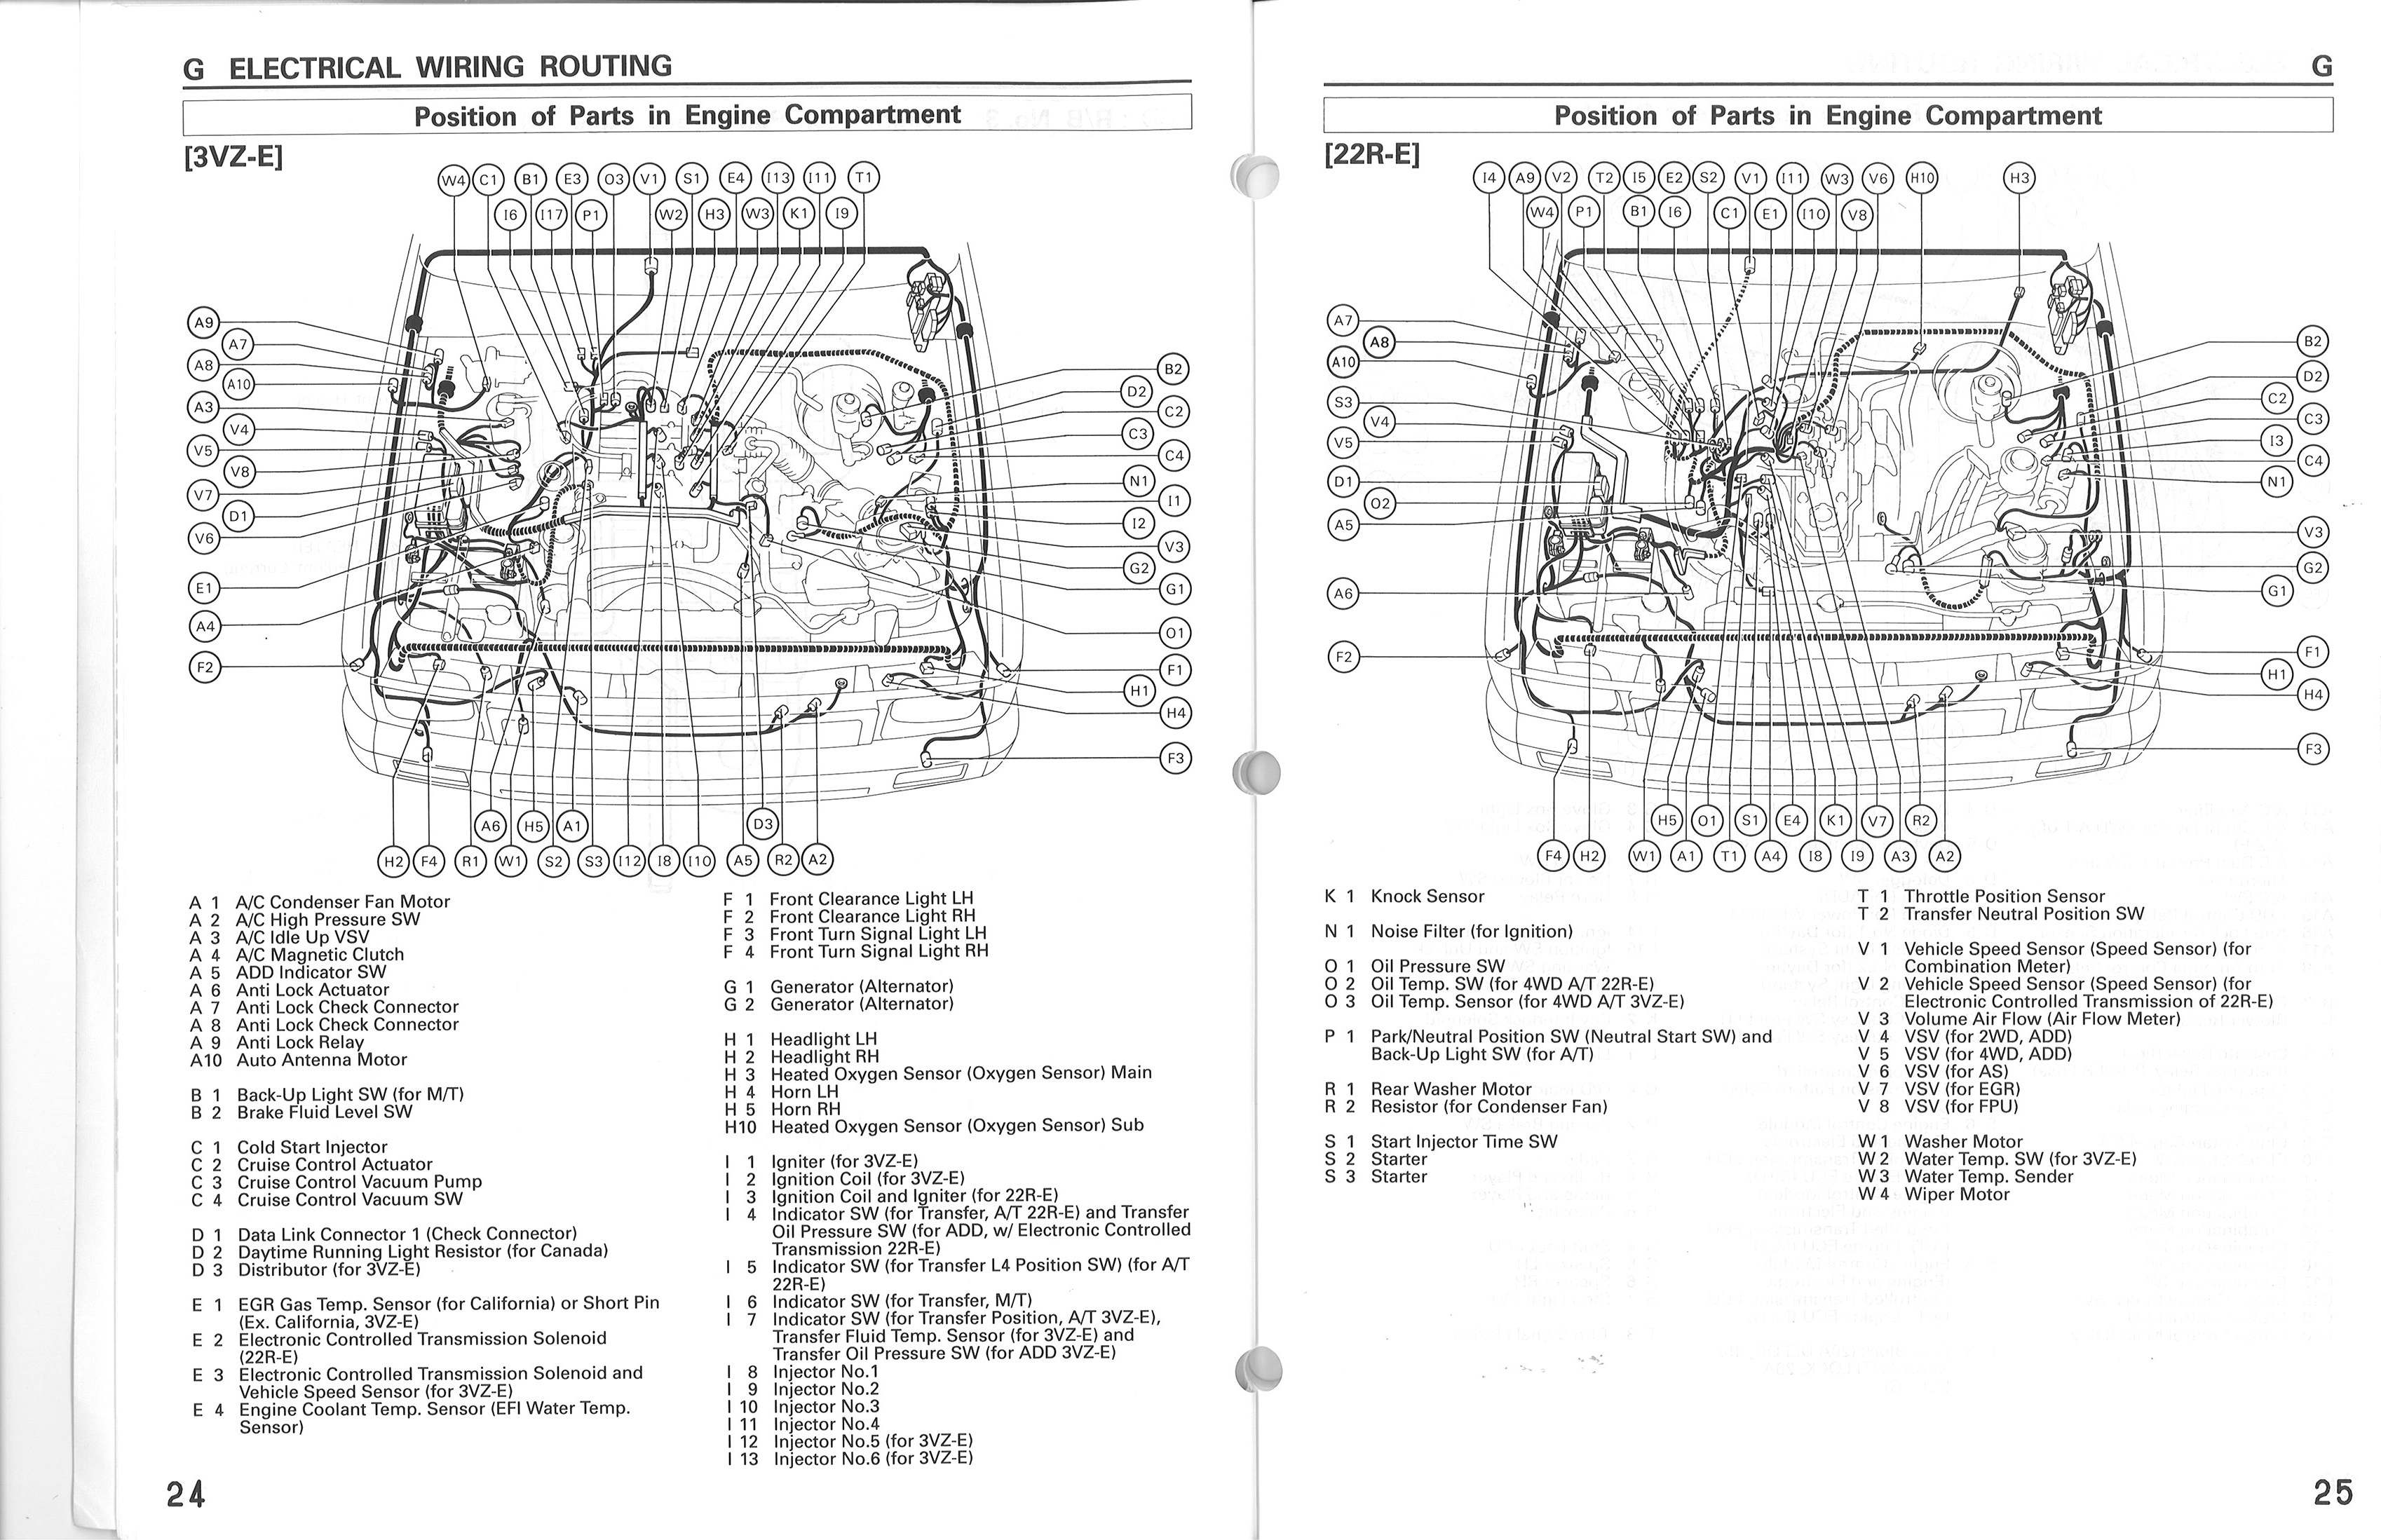 89 22re Engine Diagram in addition Toyota 1984 22r E Vacuum Line Diagram moreover Bad EGR Valve Symptoms And What To Do About Them furthermore Head Gasket Replacement Cost in addition Picture Of Where The Fuel Relay Switch Is On A F 150 1988 Pick Up Truck. on toyota pickup 22re coolant hose diagram